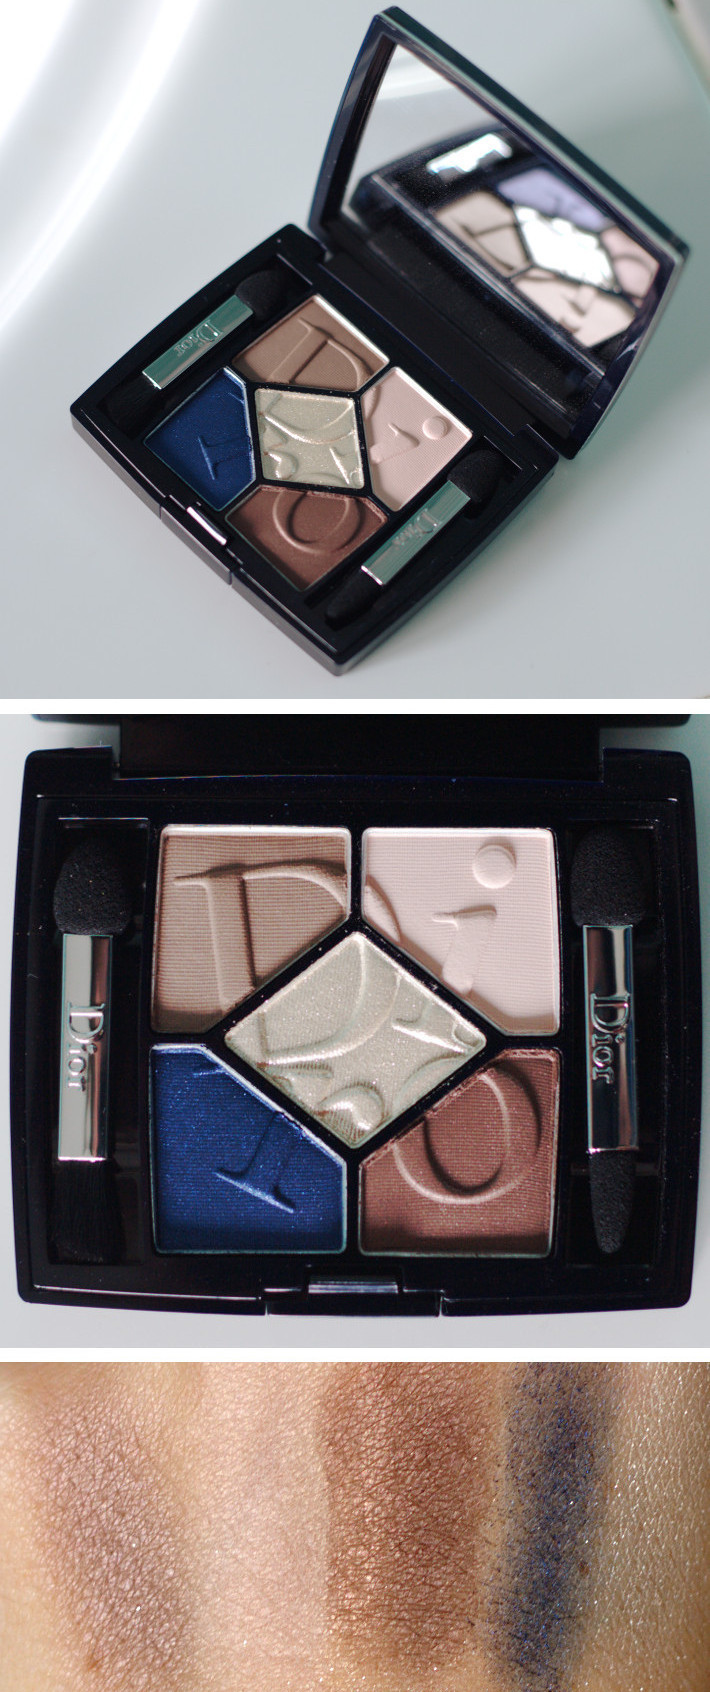 5 Couleurs Cosmopolite Couture Colours & Effects Eyeshadow Palette in Exuberante review and swatches